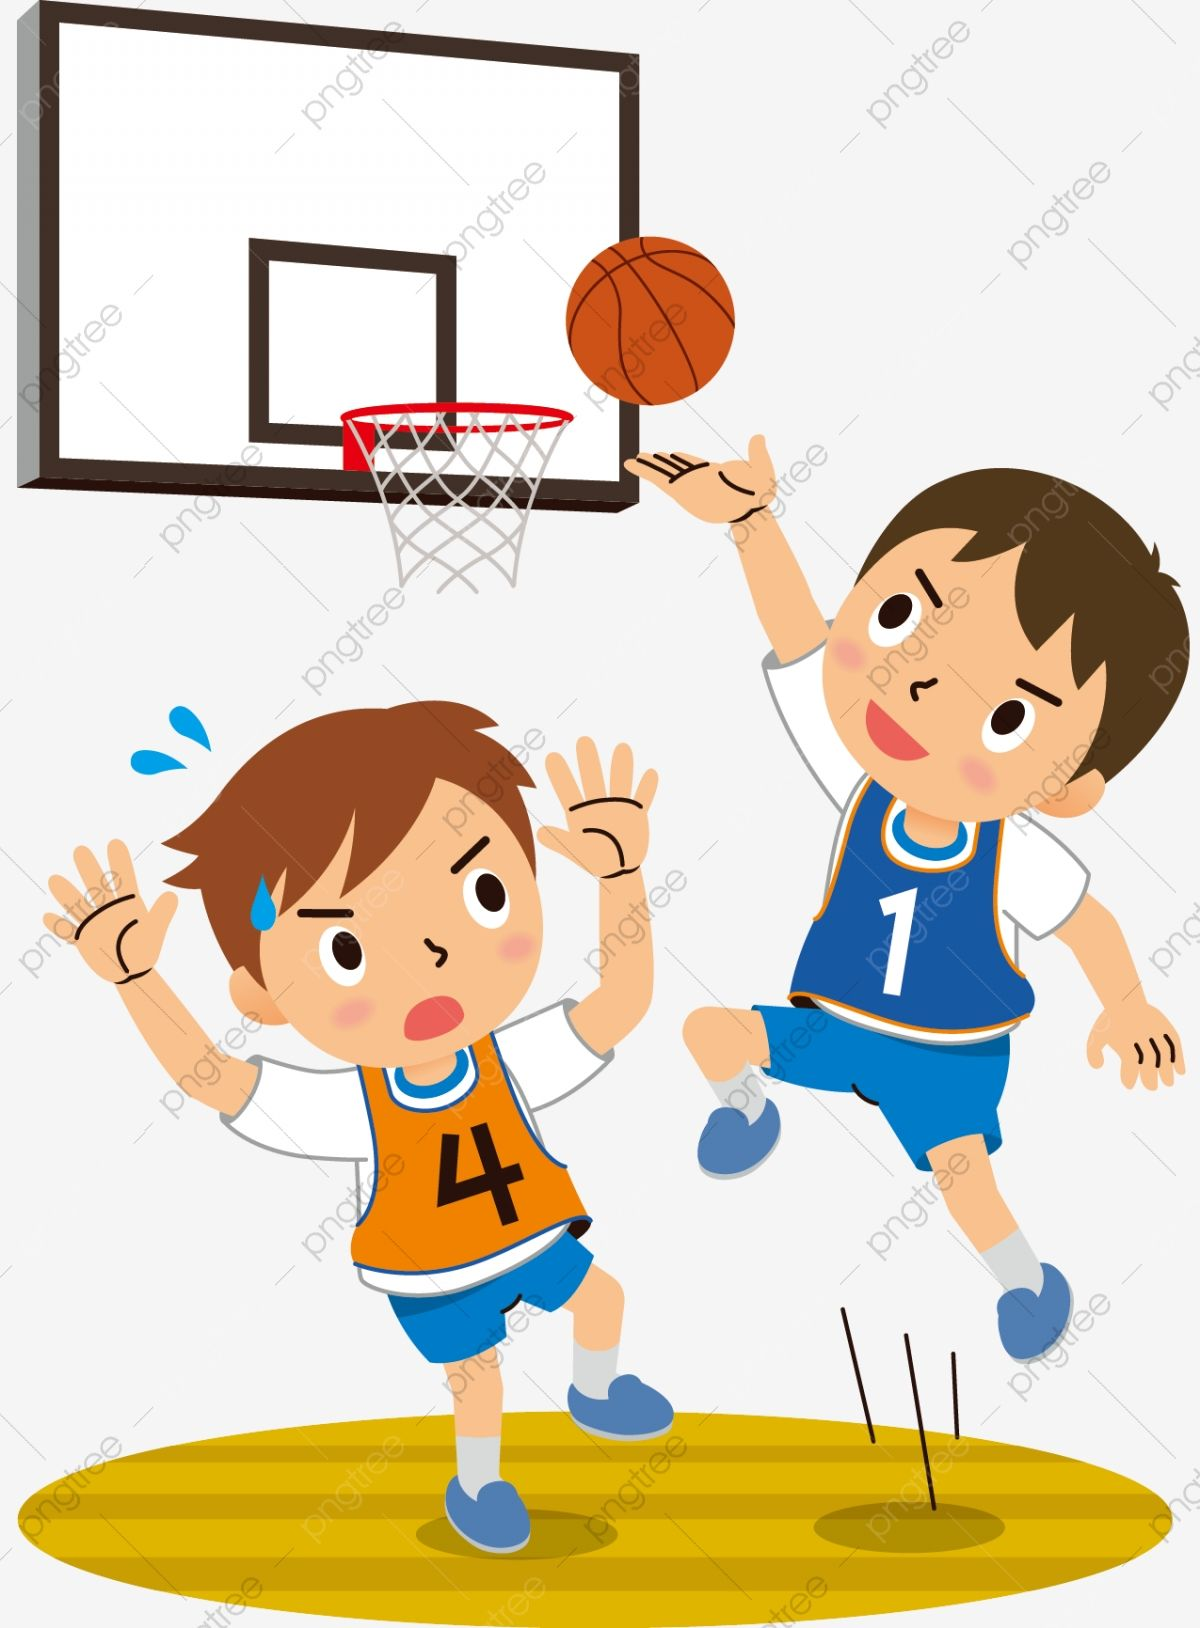 Hand Drawn Cartoon Teenager Playing Basketball Childrens Day Motion Play Basketball School Children Clipart Jump Cute Cartoon Png And Vector With Transparent How To Draw Hands Cartoon Clip Art Cartoon